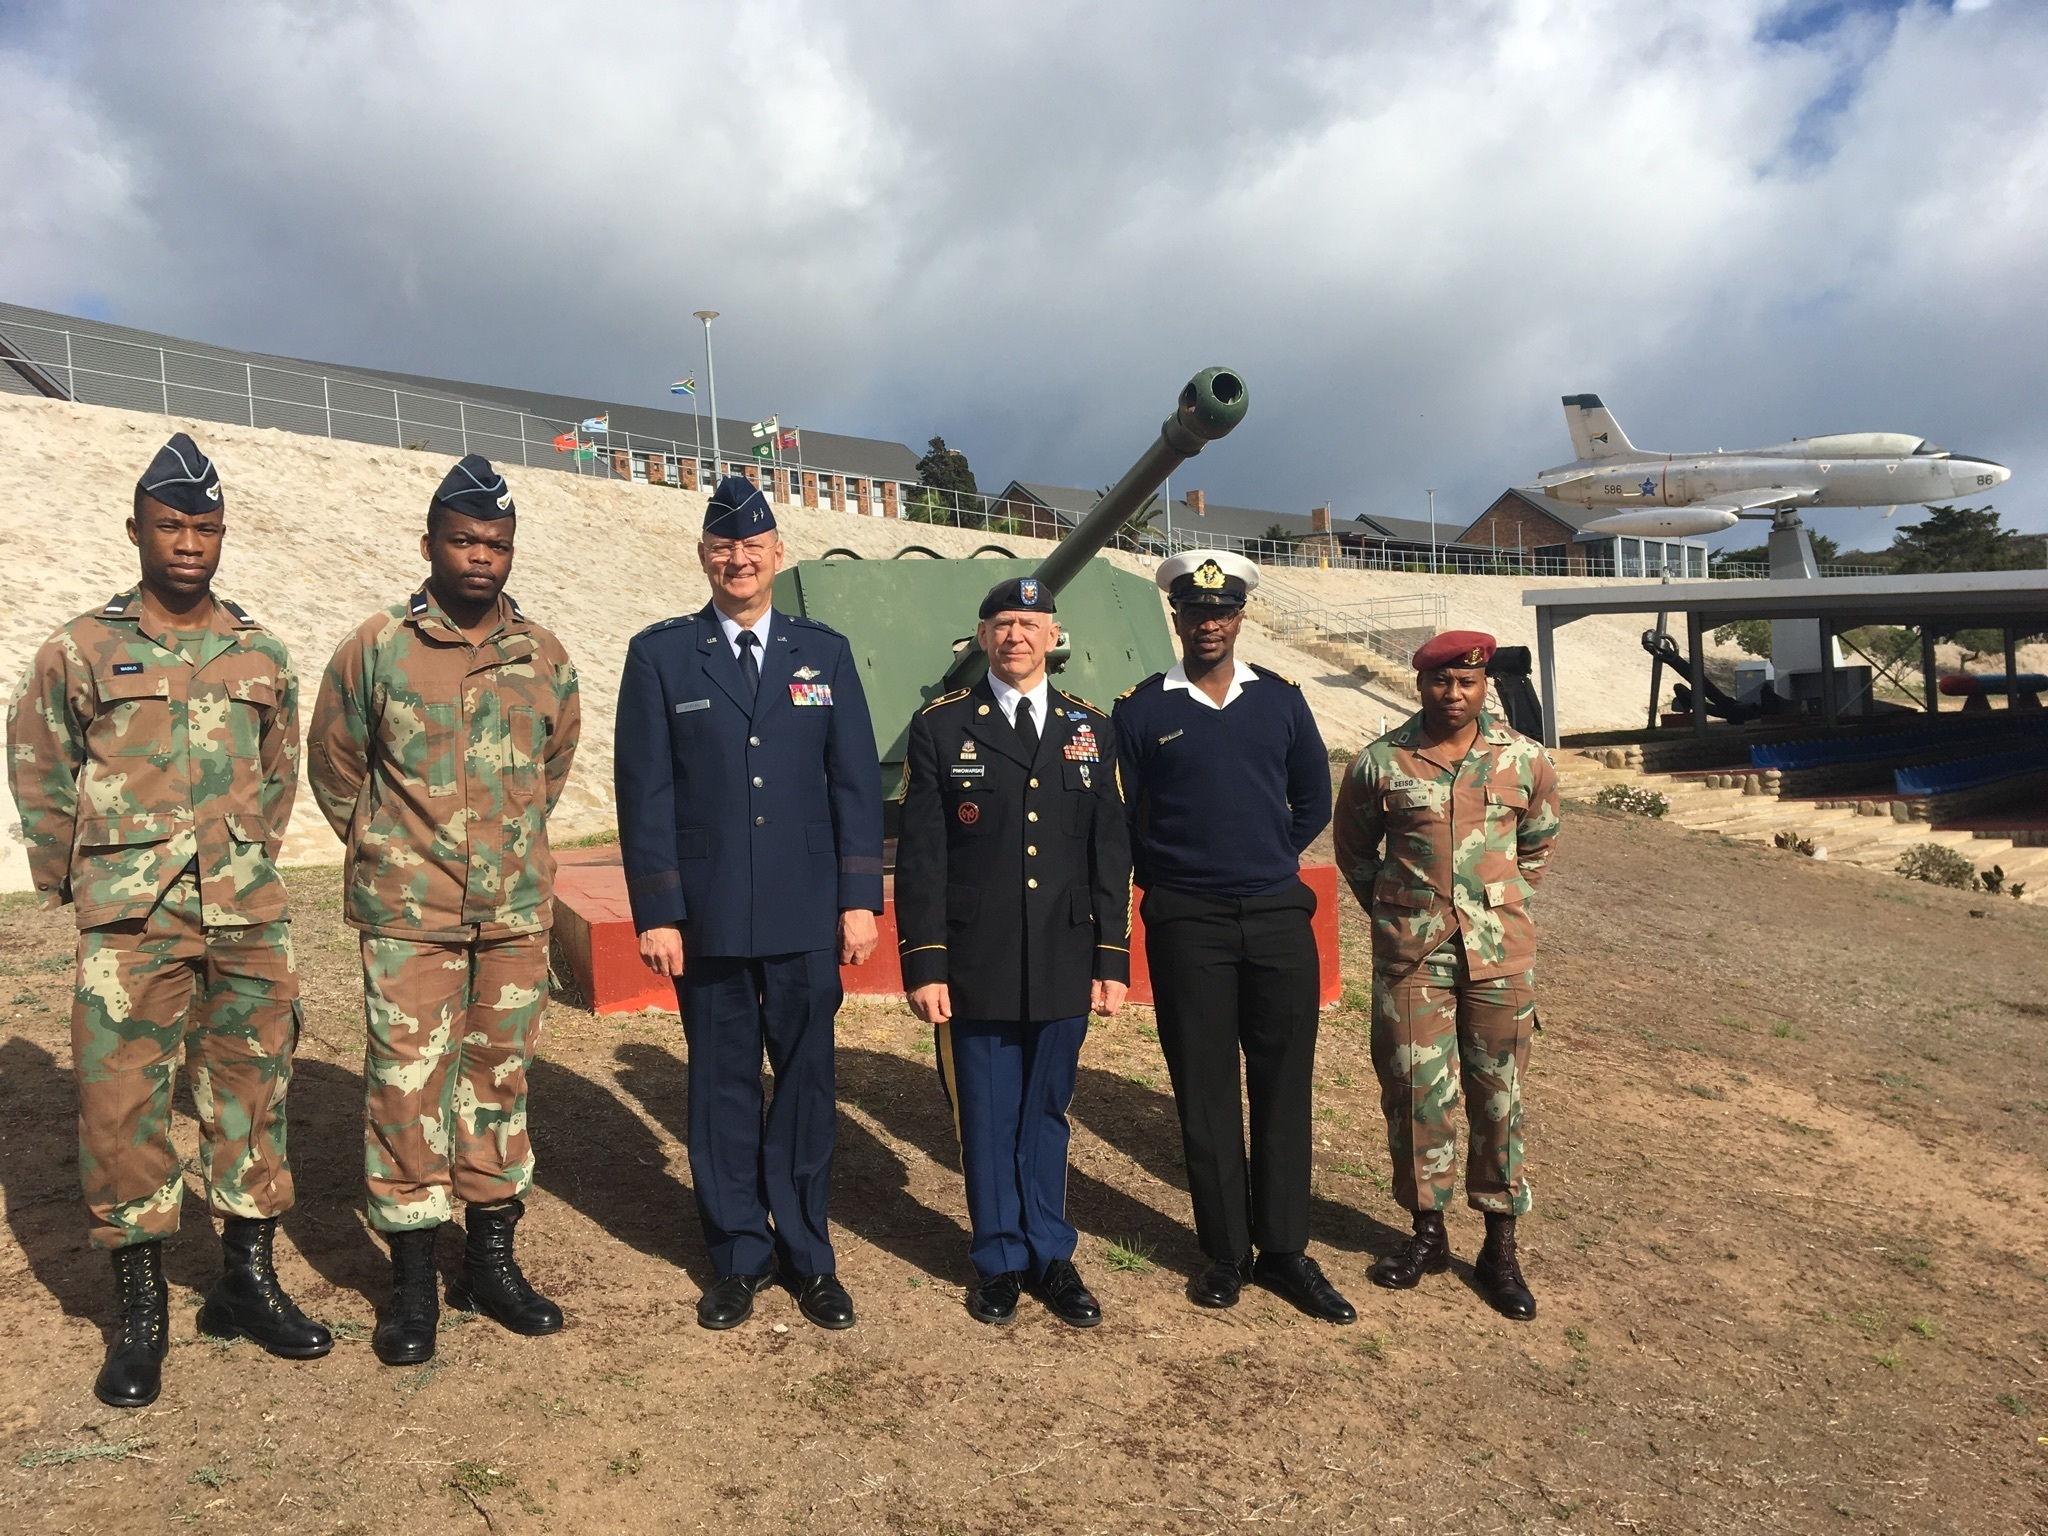 Major General Anthony German, the Adjutant General of New York, ( second from left) and New York Army National Guard Command Sgt. Major David Piwowarski ( second from right) pose with students at the Military Academy of South Africa in Saldanha,  Western Cape Province, South Africa on May 8, 2018. German was speaking at the Academy as part of an exchange program executed as part of the New York National Guard State Partnership Program relationship with the South African National Defense Force. (U.S. Army National Guard photo by Major Al Philips.)